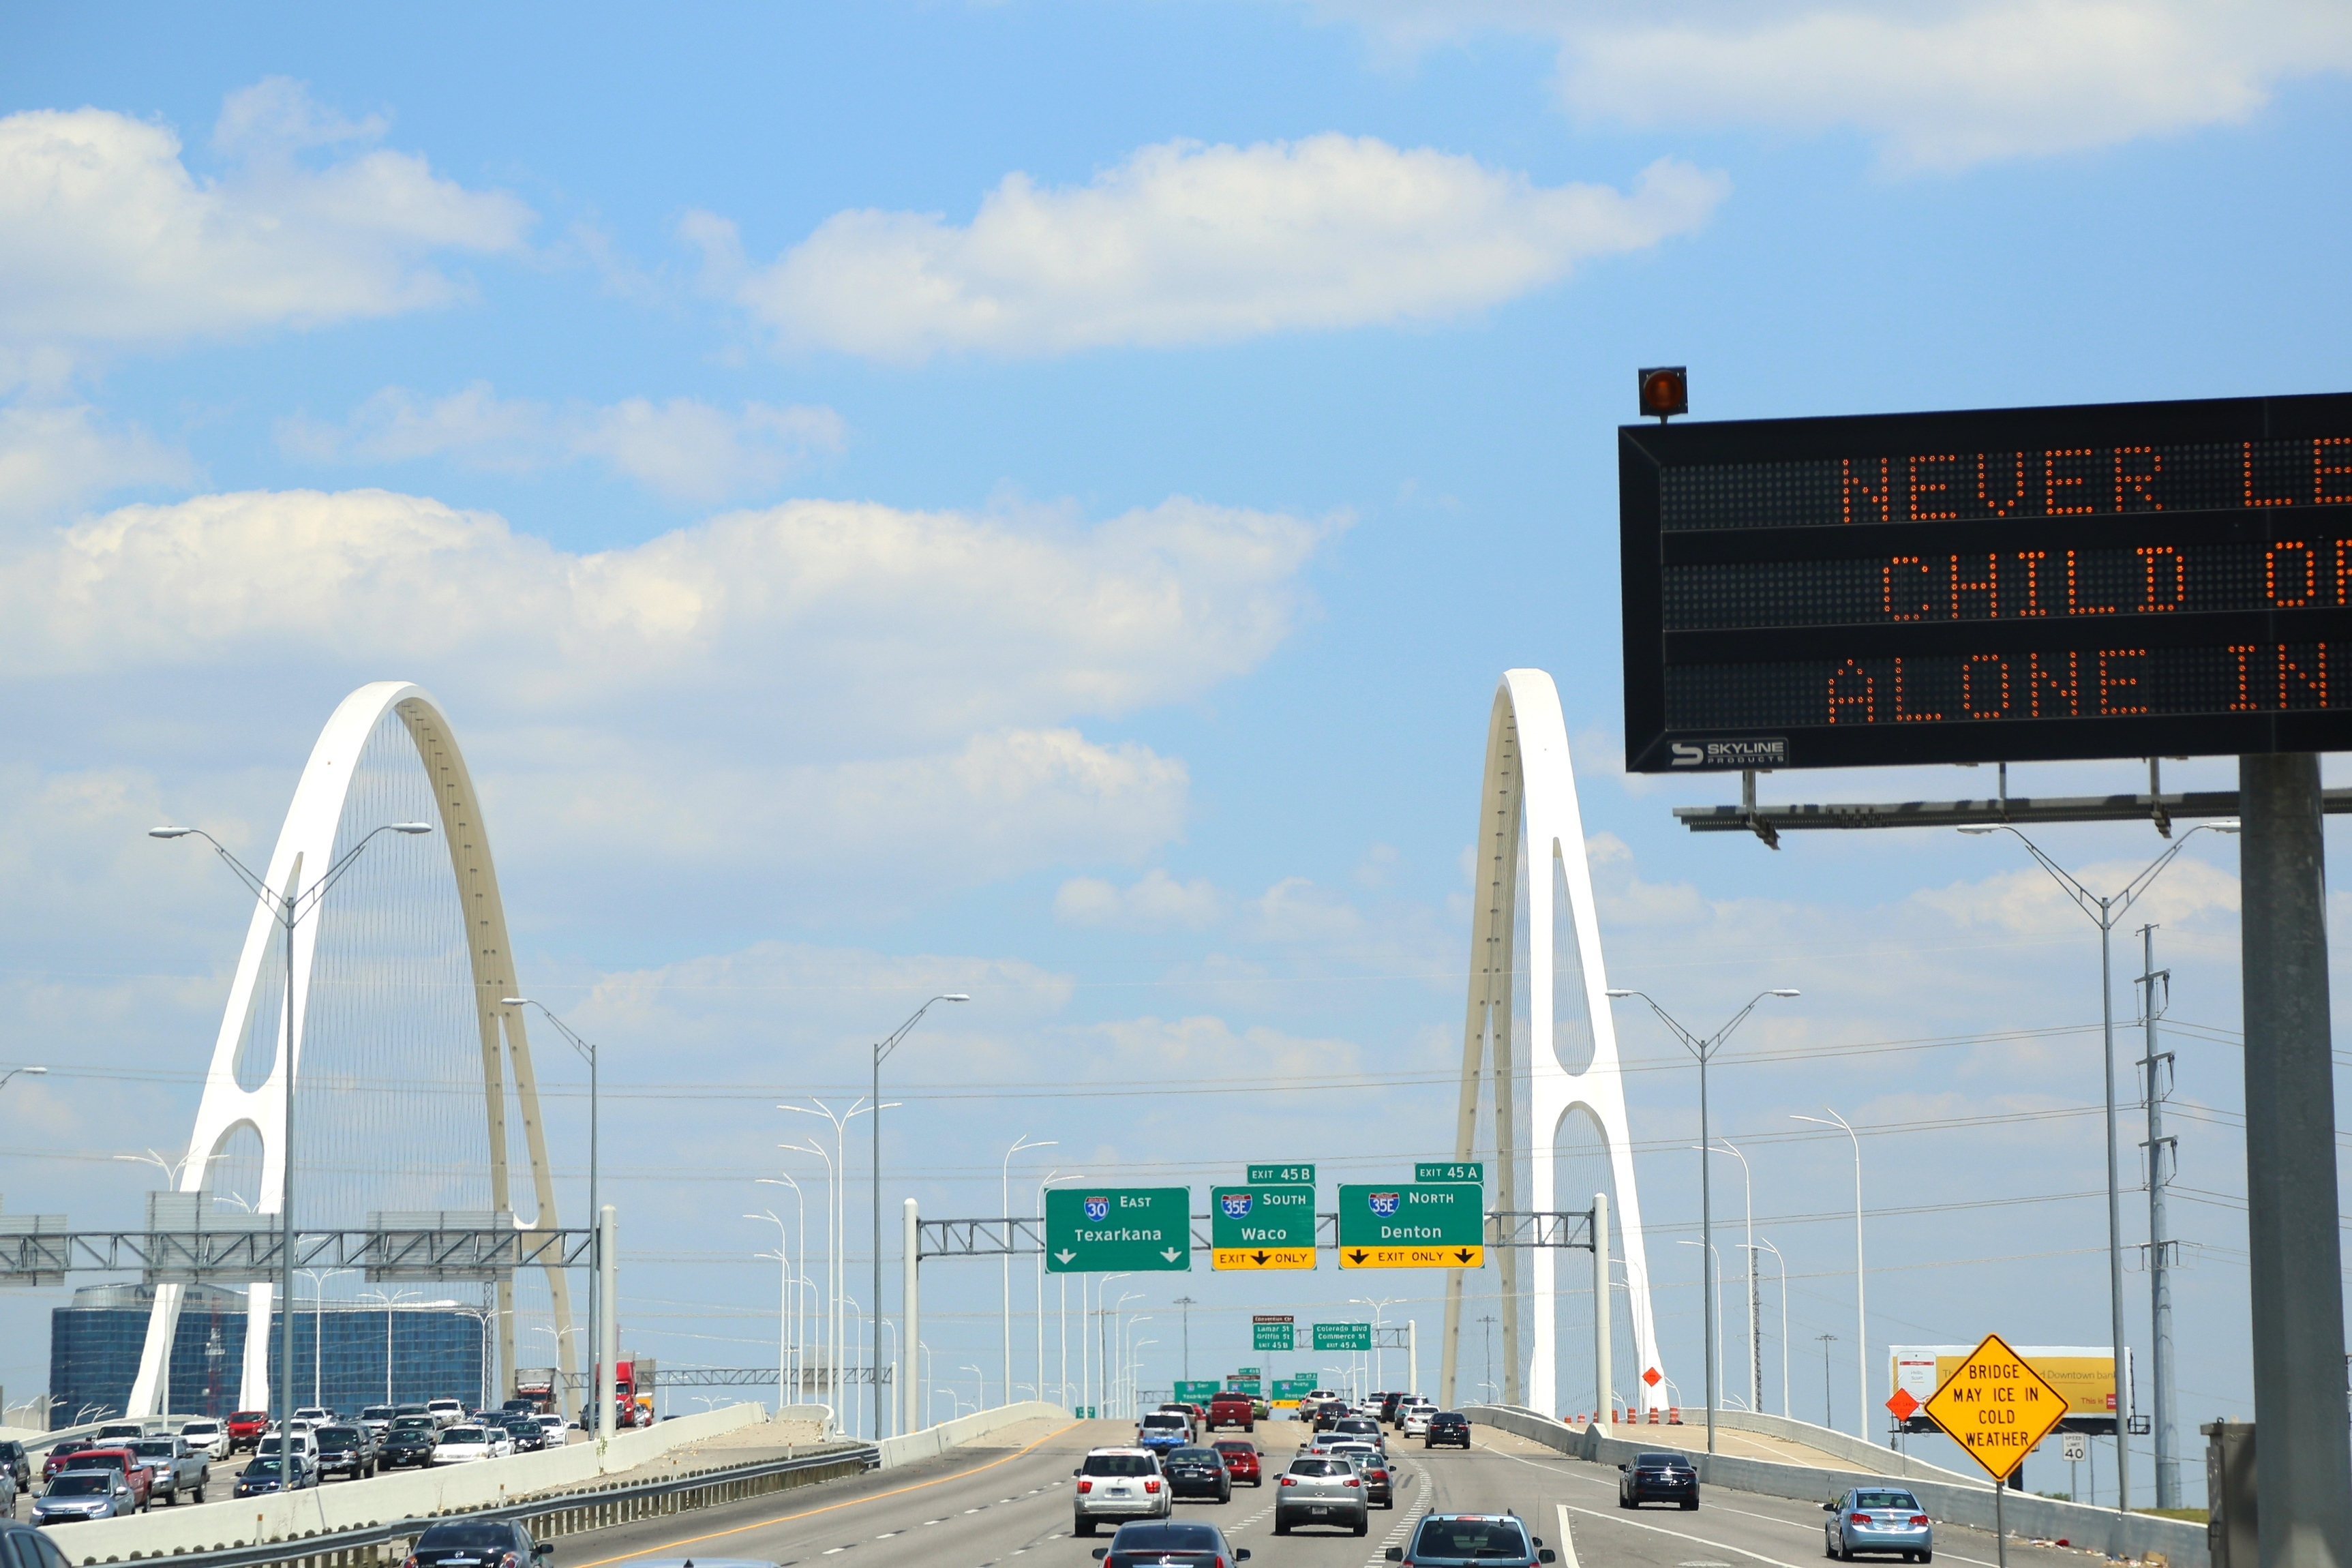 most recent new interstate bridge in Dallas